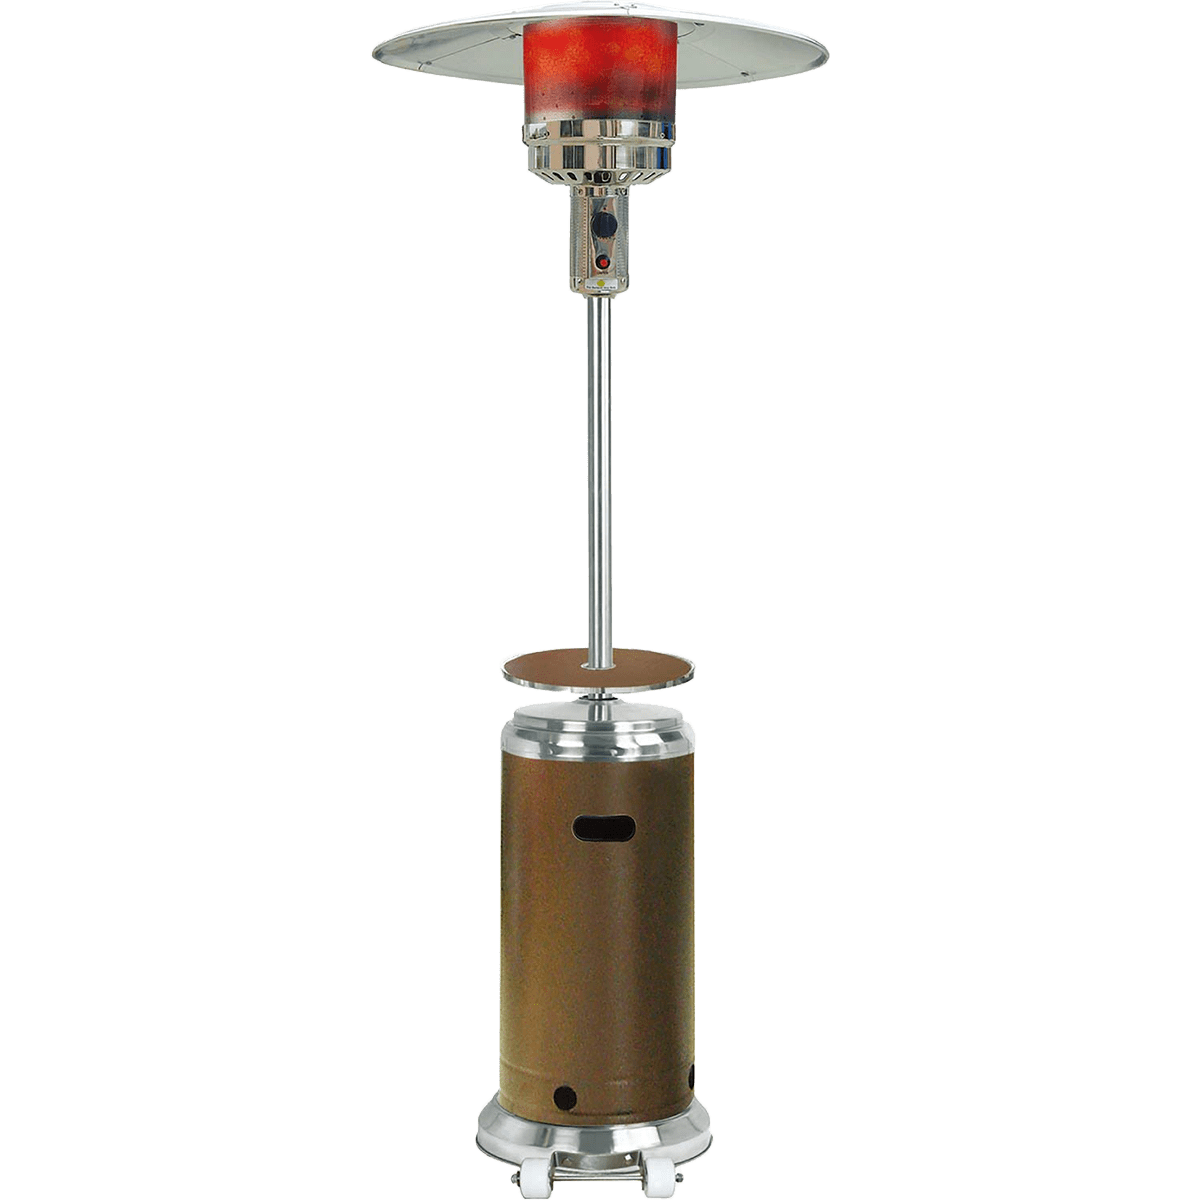 Hanover 41,000 BTU Steel Umbrella Propane Patio Heater